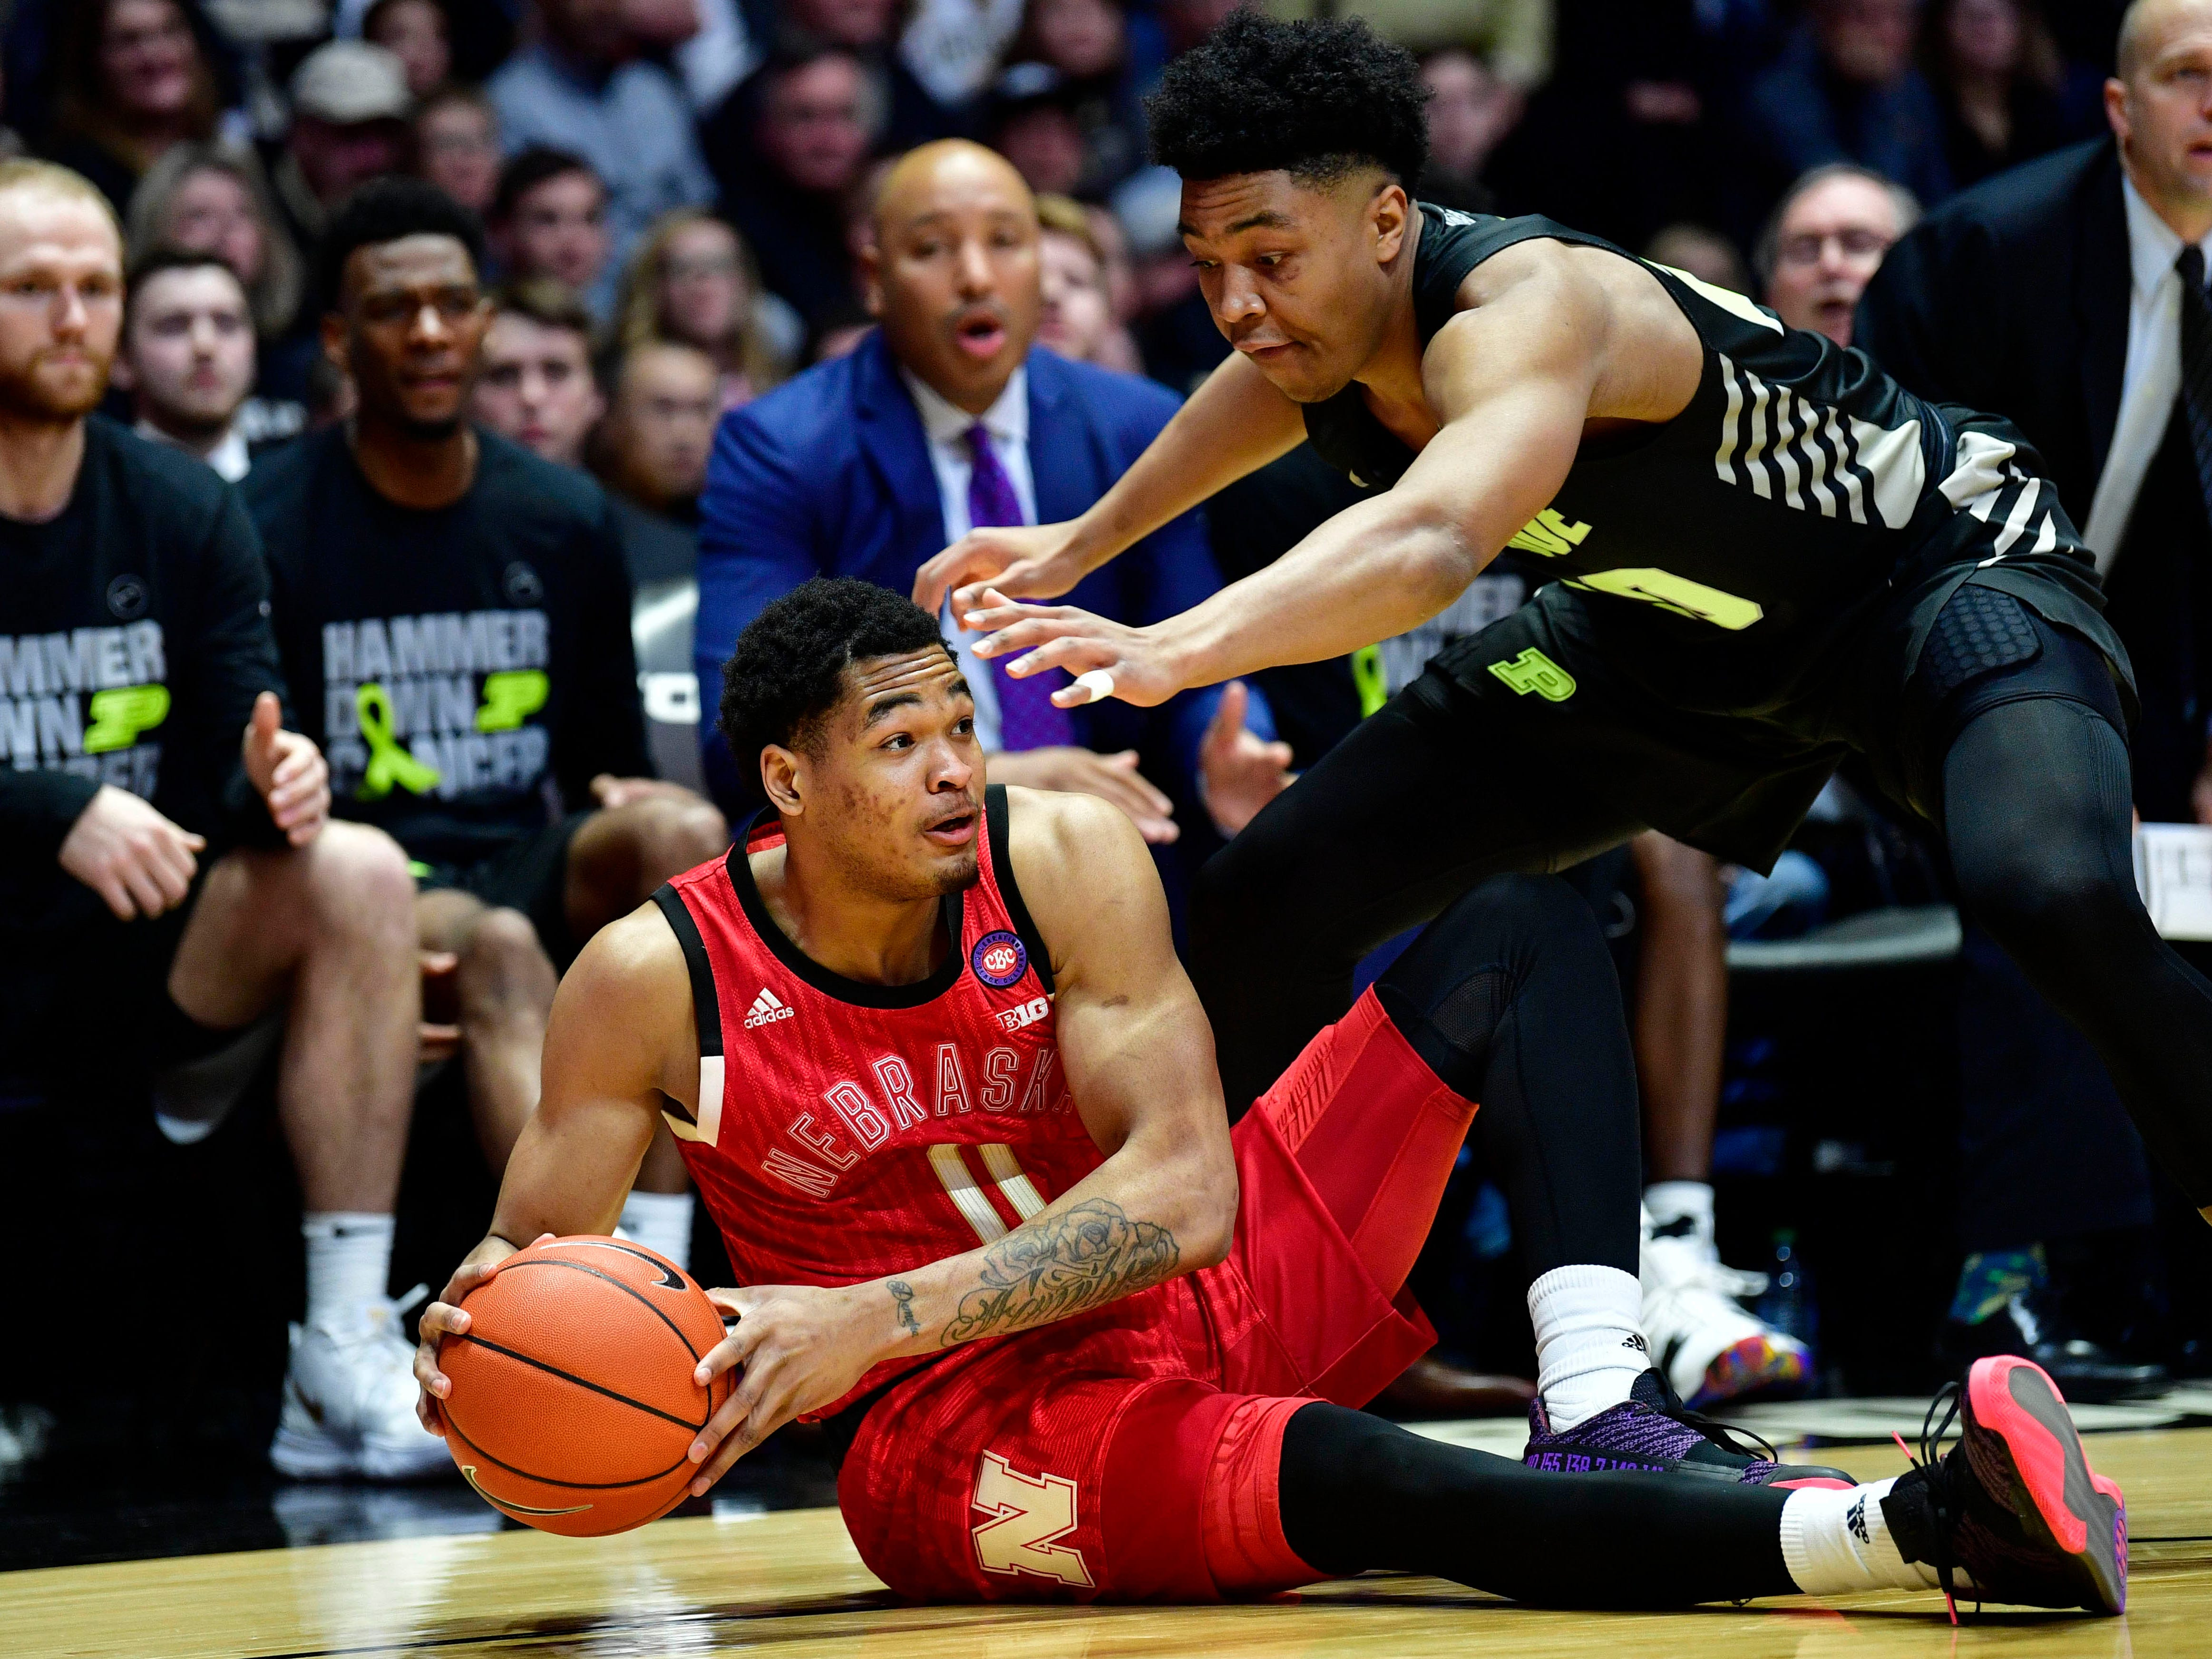 Nebraska Cornhuskers guard James Palmer Jr. (0) attempts to keep a down ball away from Purdue Boilermakers guard Nojel Eastern (20) during the first half of the game a